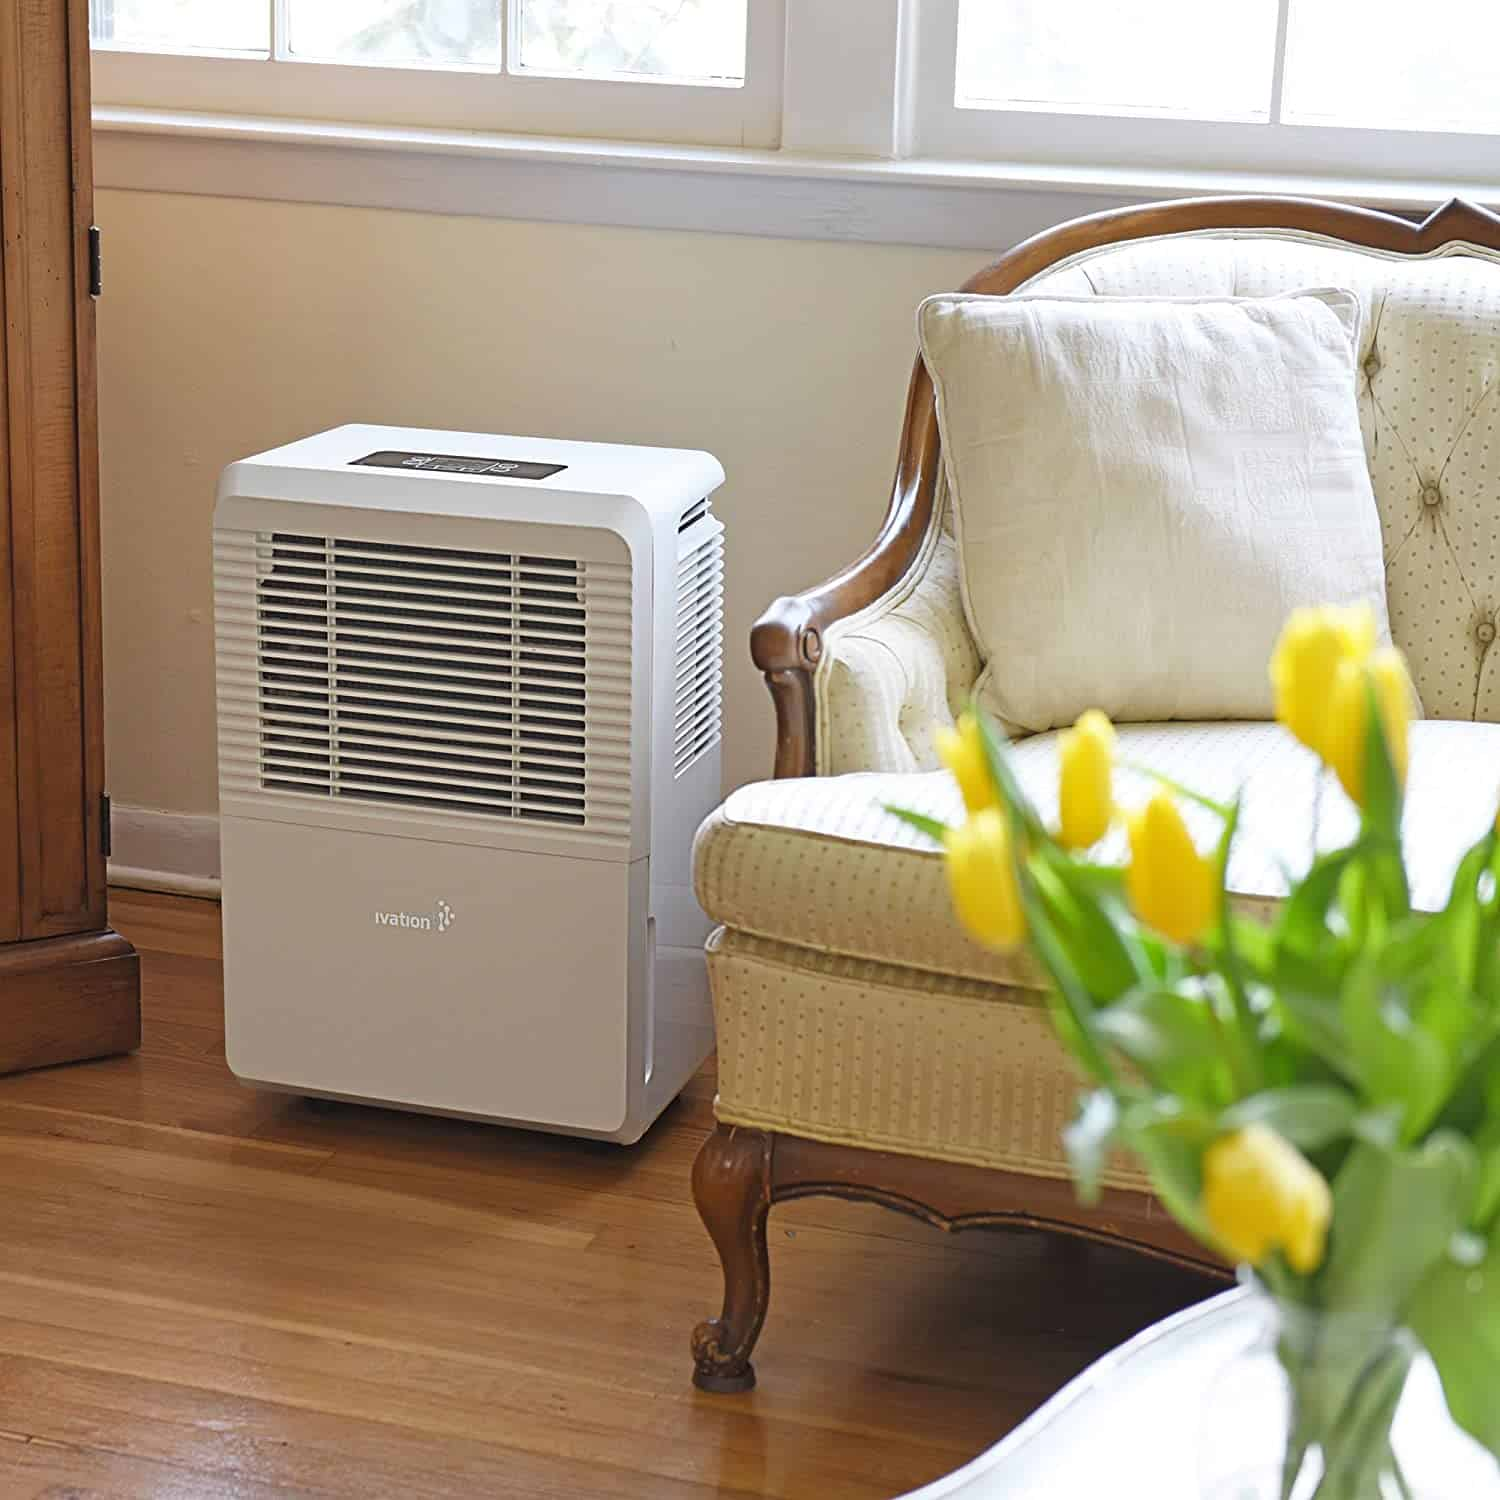 Top 12 Most Energy Efficient Dehumidifiers